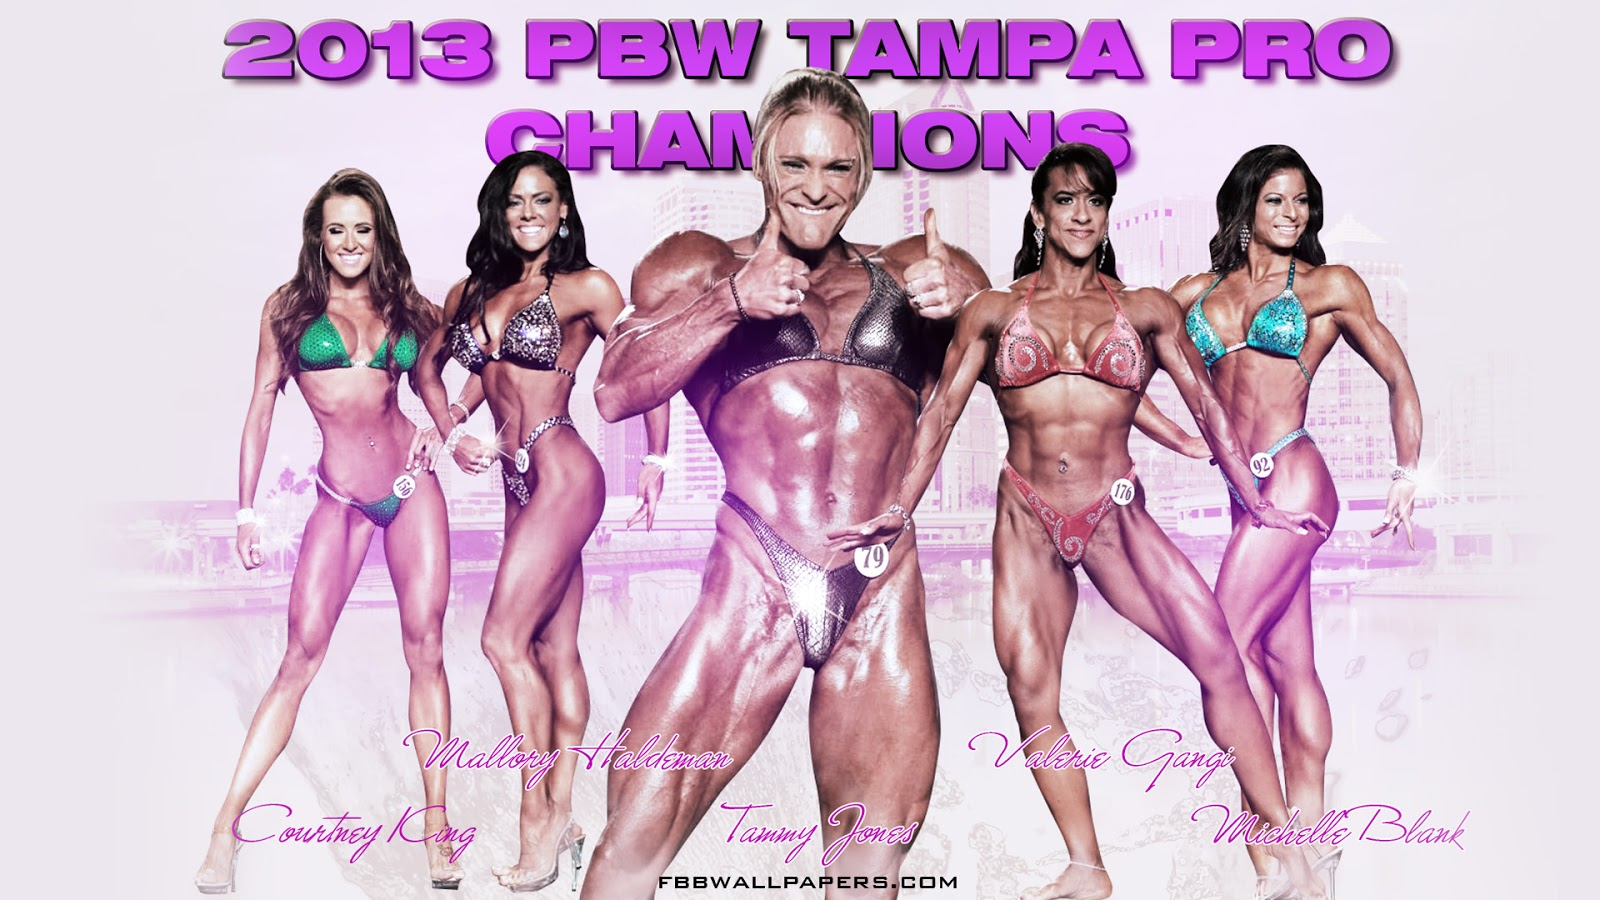 2013 PBW Tampa Pro Women Champions 1920 by 1080 Wallpaper